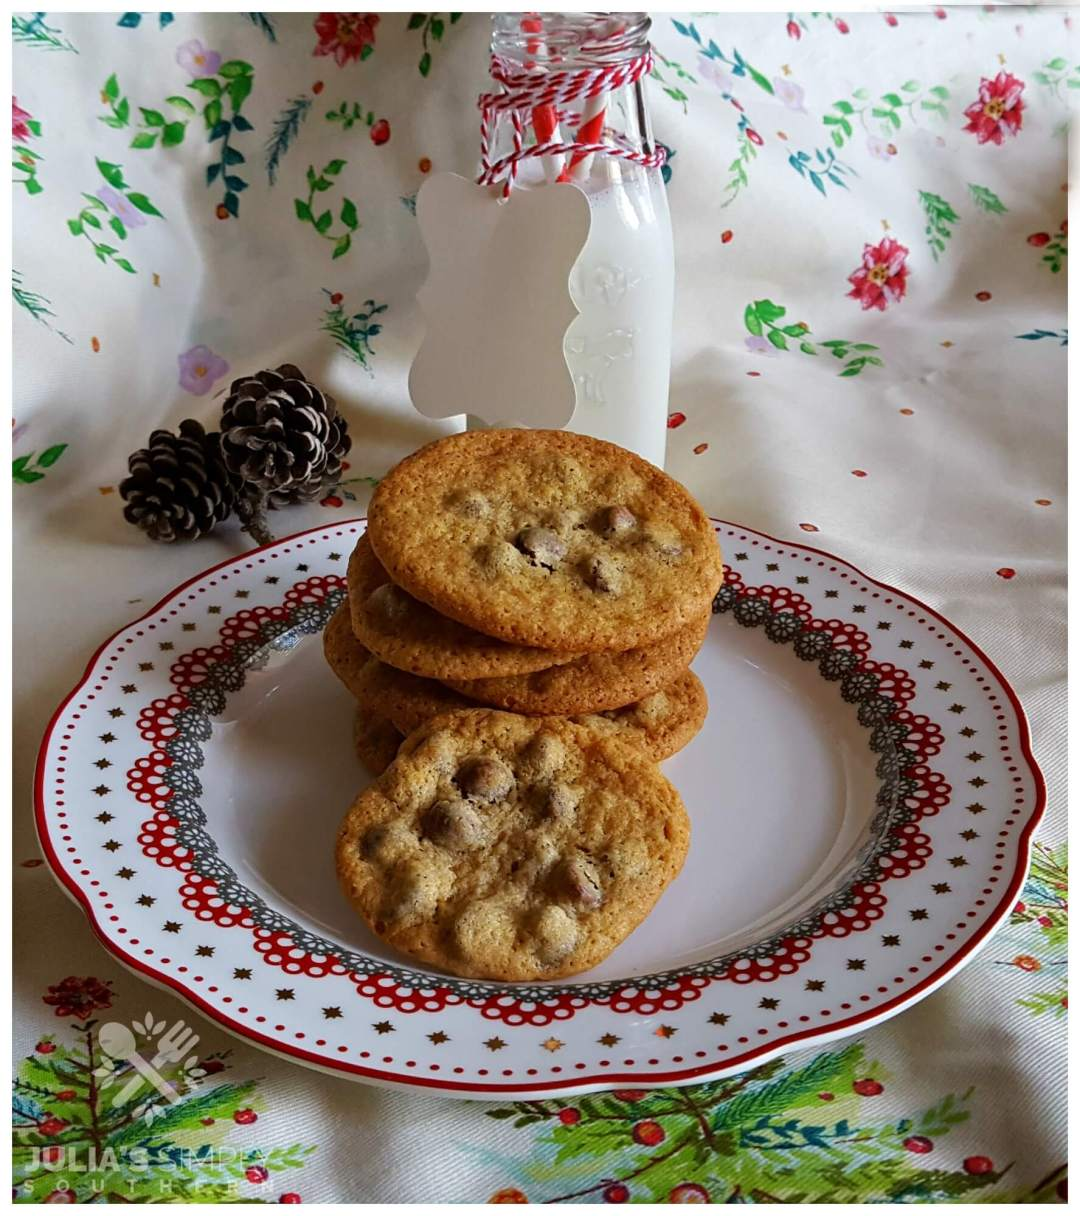 Scratch made chocolate chip cookies recipe